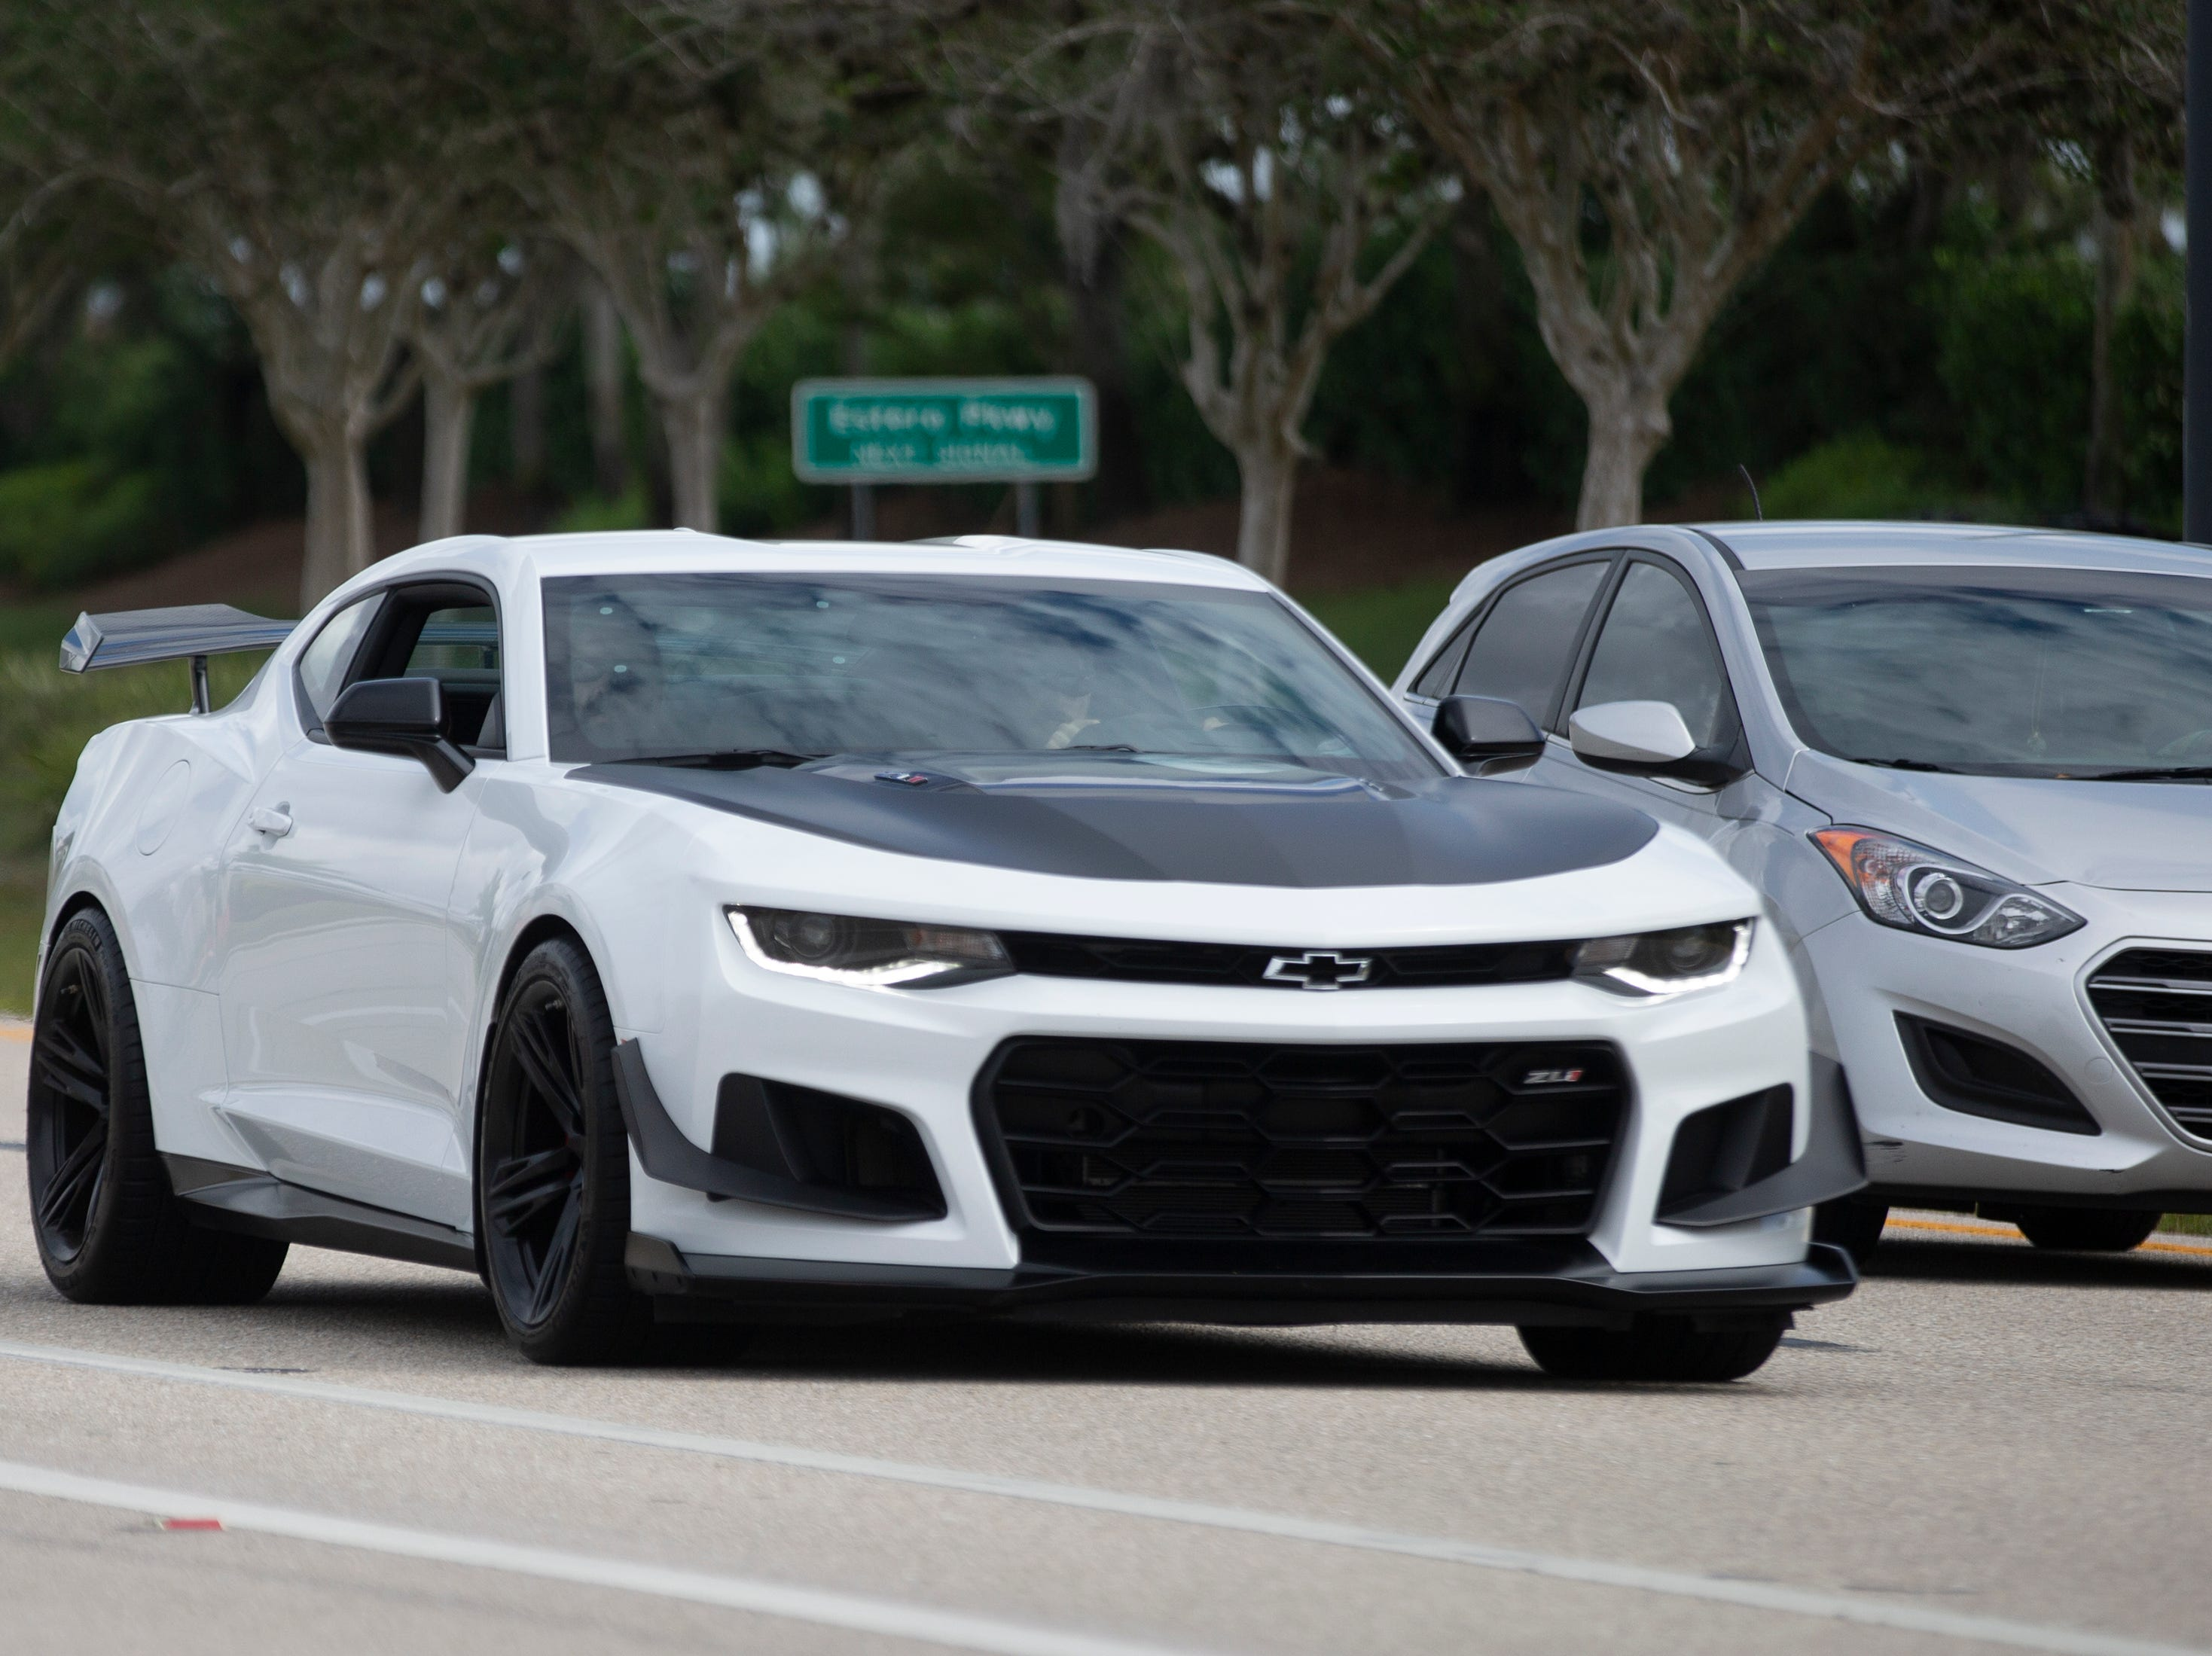 Cars make their way down Ben Hill Griffin Parkway during the Cruis'n for a Cause event on Saturday, April 13, 2019 in Estero.